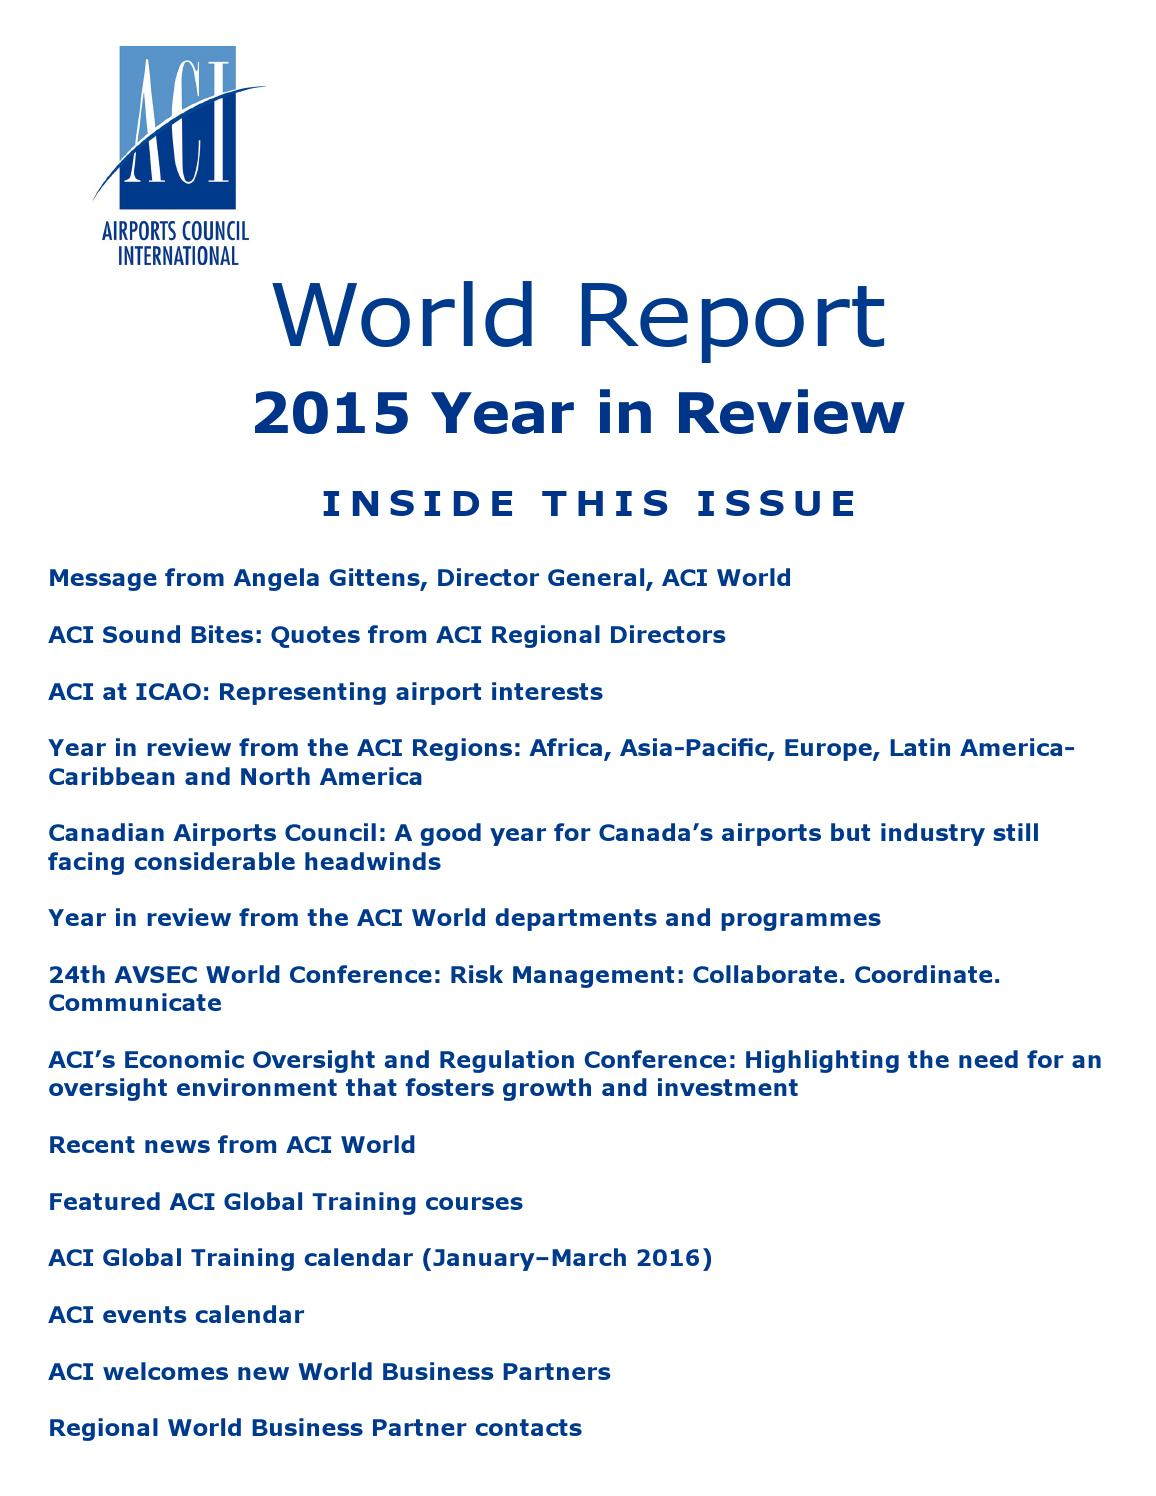 Aci world report 2015 year in review by airports council aci world report 2015 year in review by airports council international issuu xflitez Images